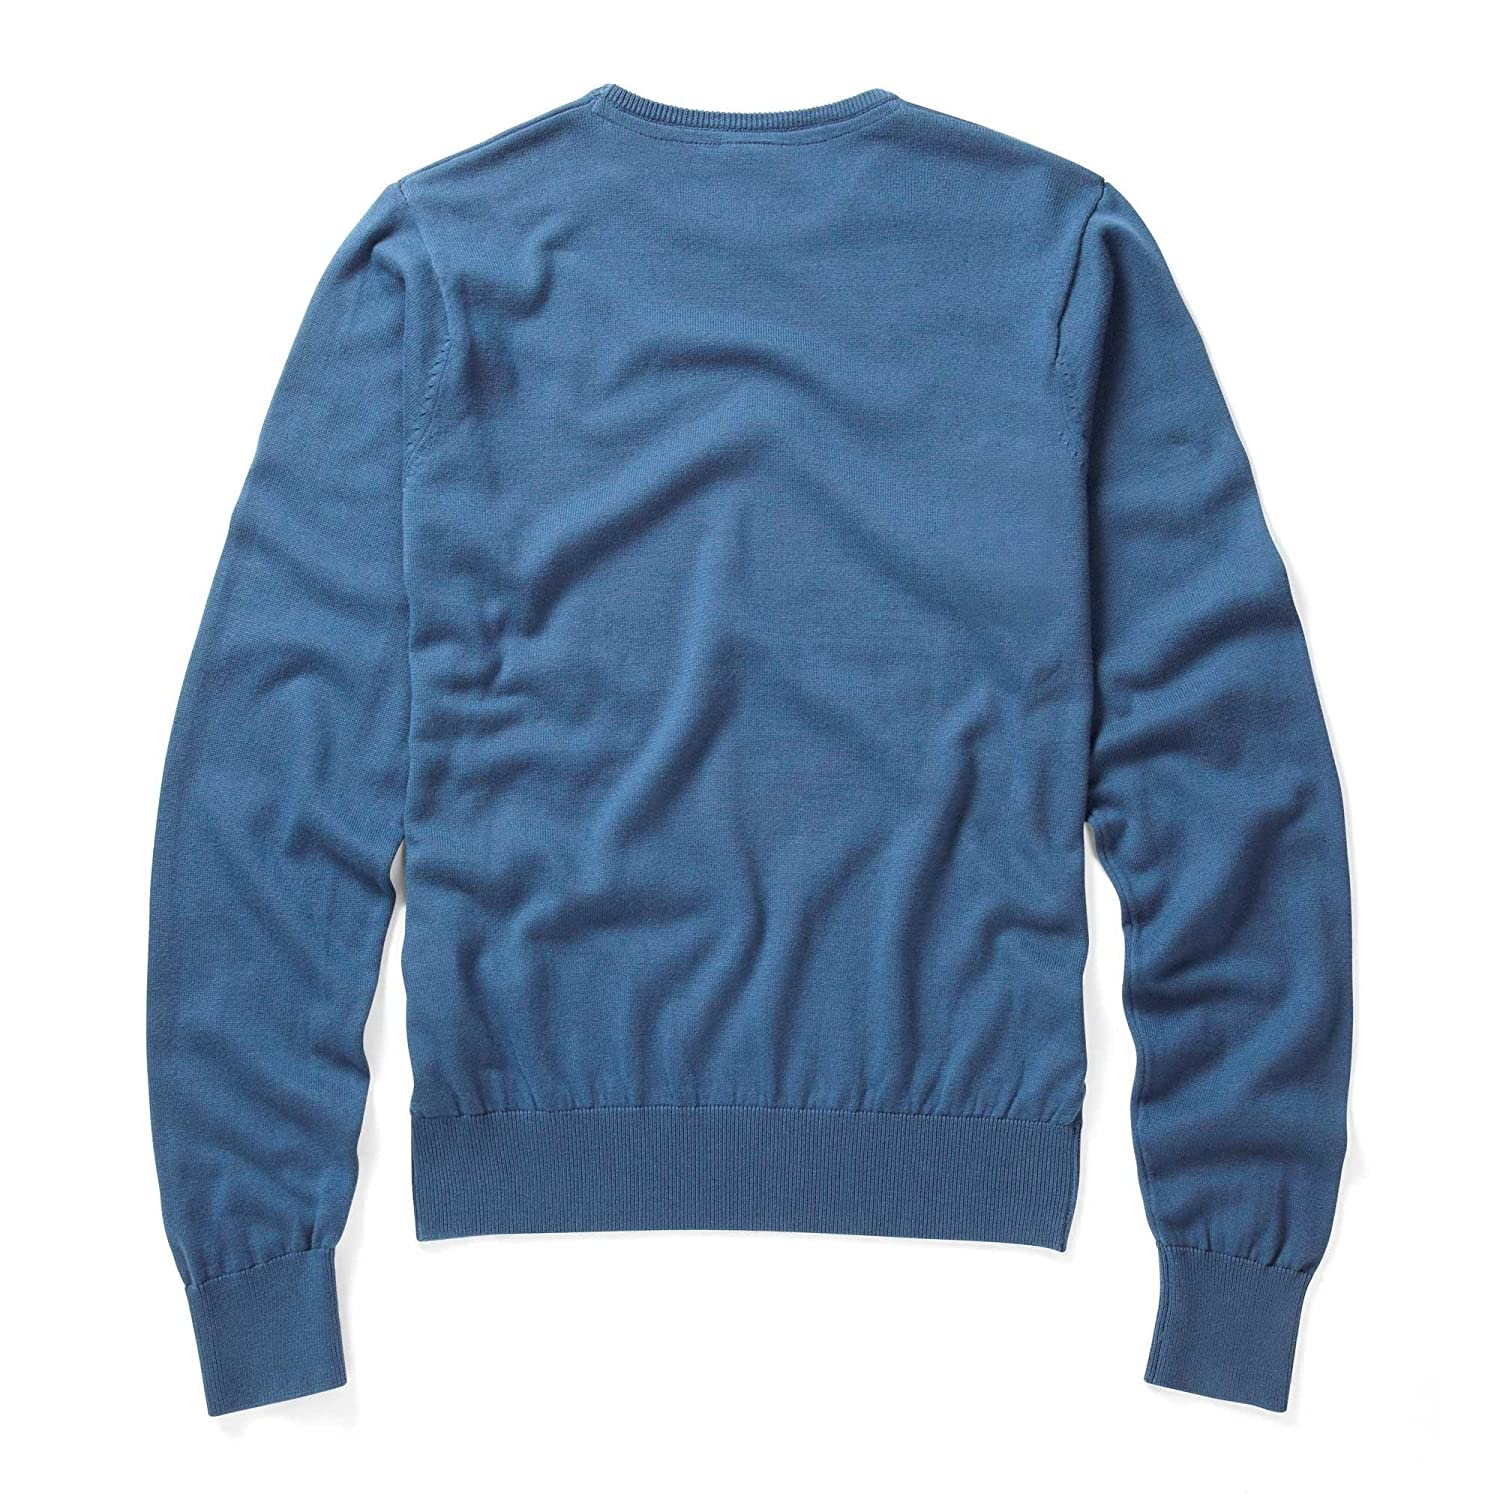 883 Police Mens Muraco Stellar Blue Knitwear Top Sweater Long Sleeve Knit Jumper